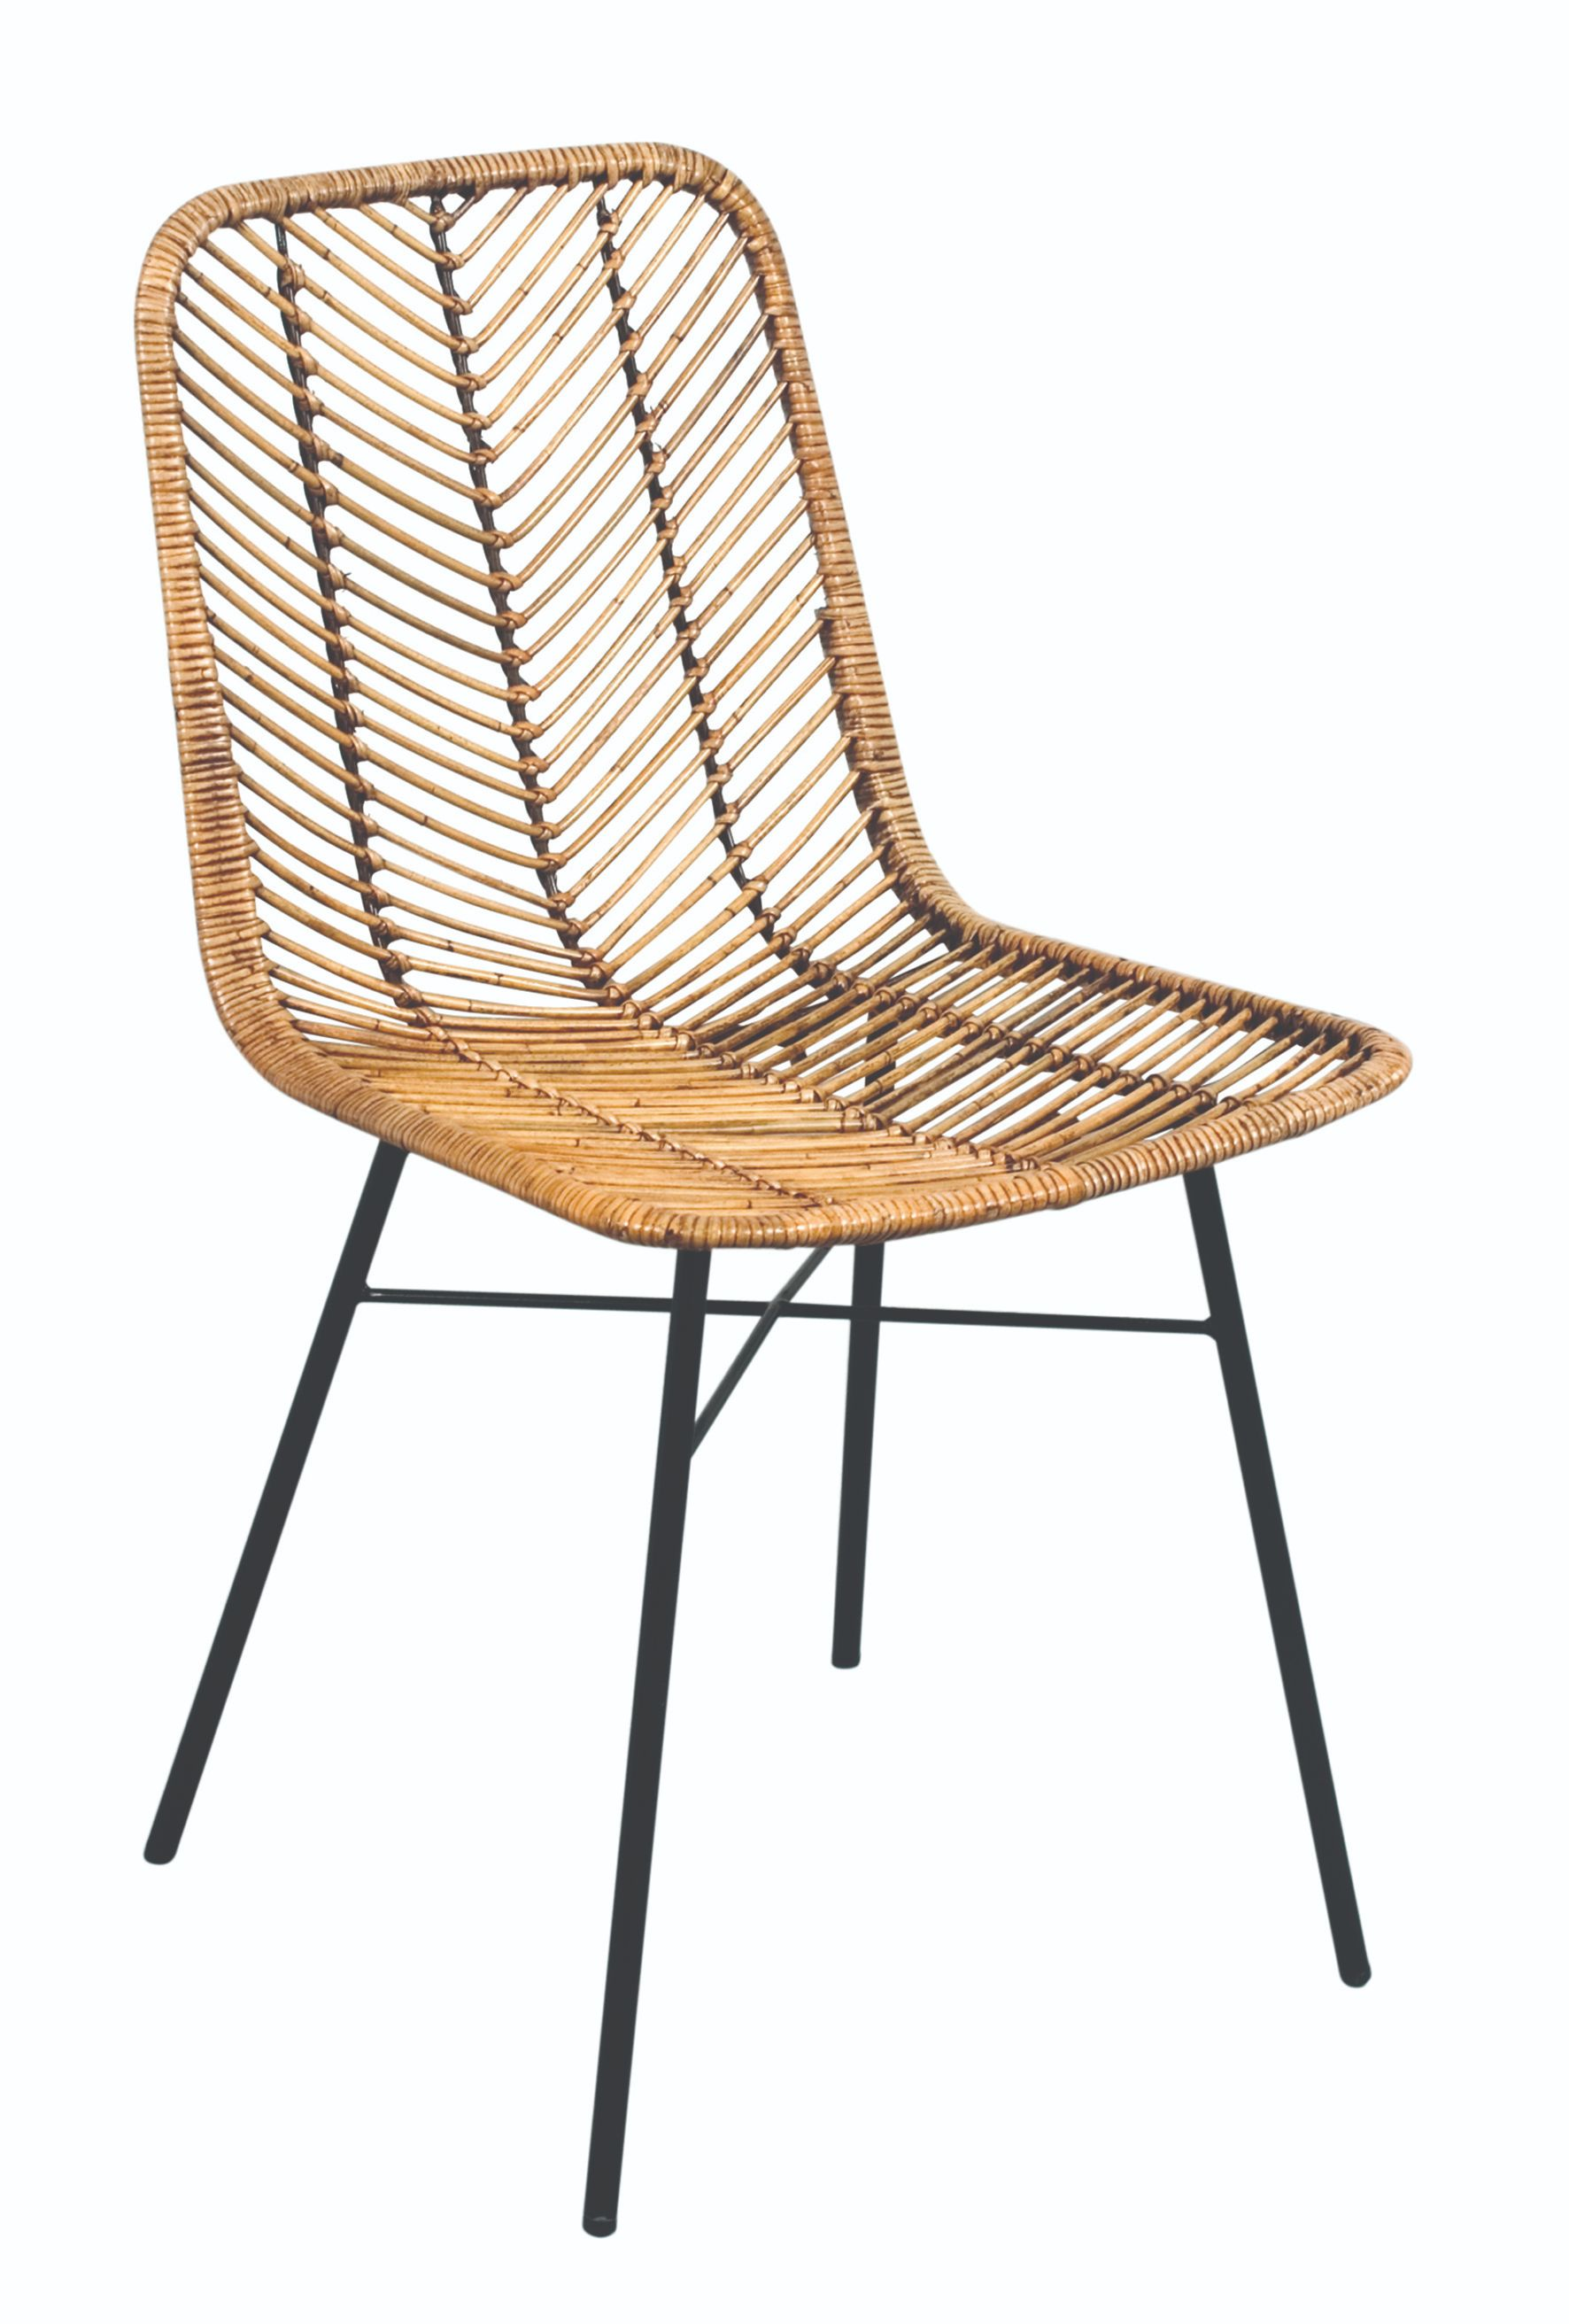 MAYA CHAIR Honey Rattan